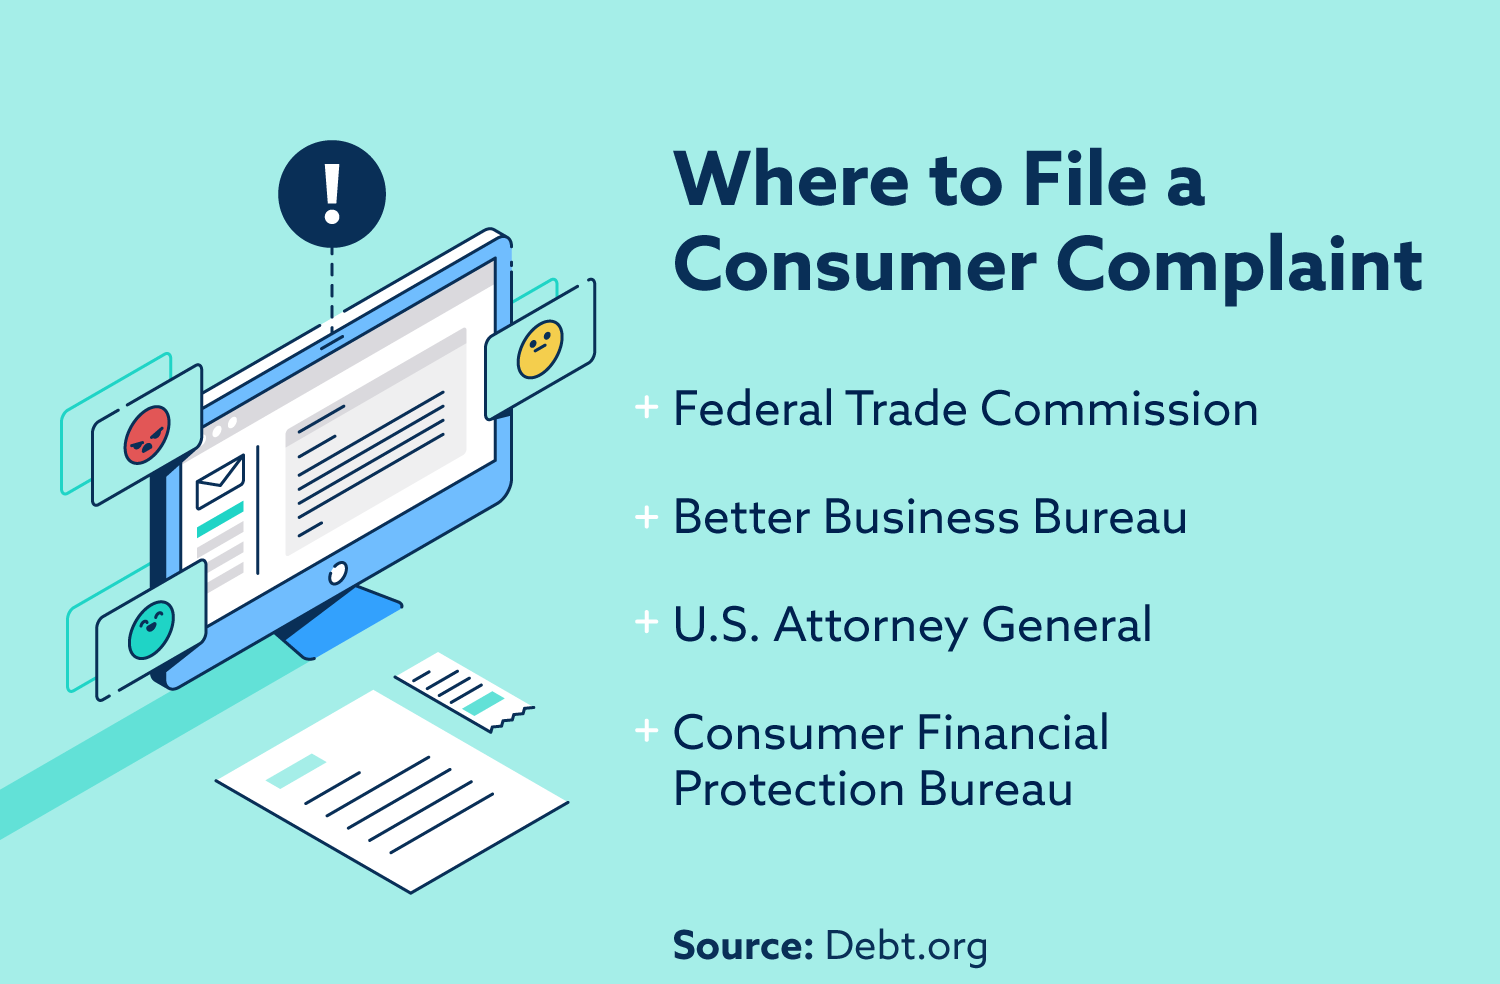 Where to file a consumer complaint: Federal Trade Commission, Better Business Bureau, U.S. Attorney General, Consumer Financial Protection Bureau.